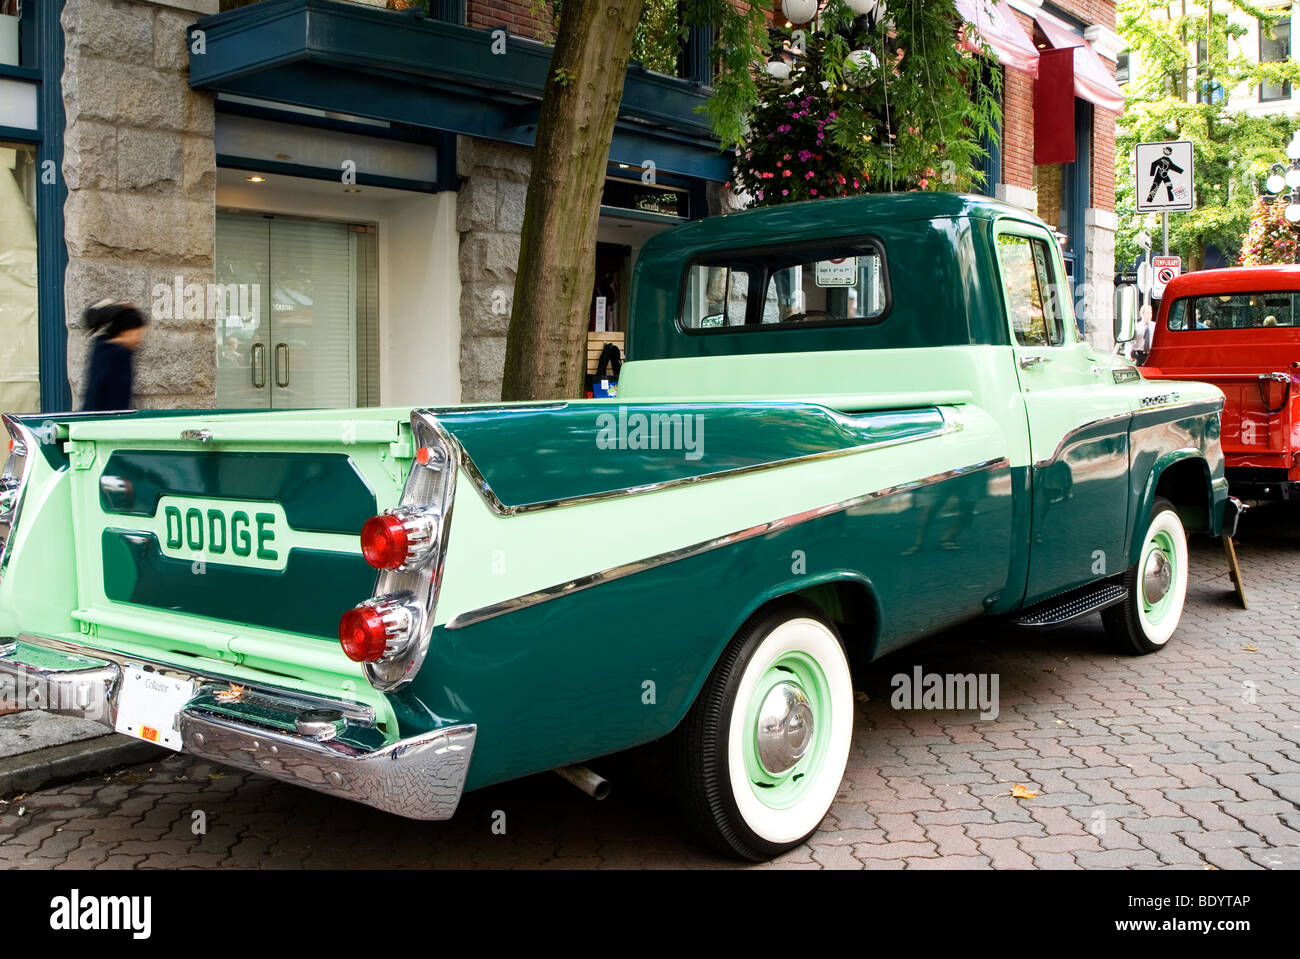 Dodge Truck Stock Photos & Dodge Truck Stock Images - Alamy